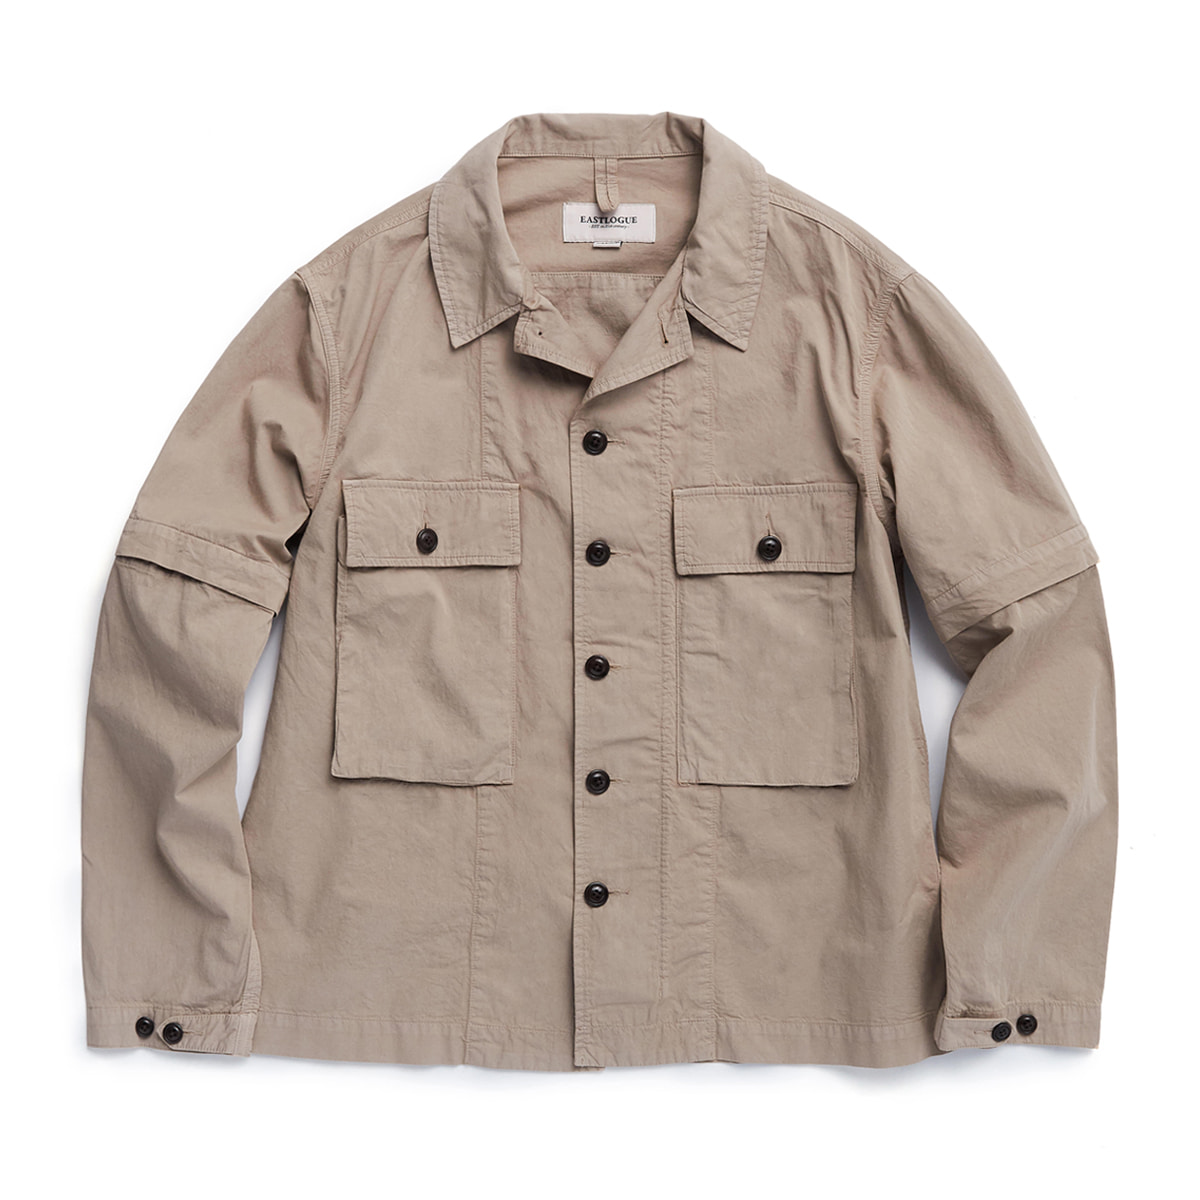 [EASTLOGUE] KW M43 JACKET 'DYED BEIGE'